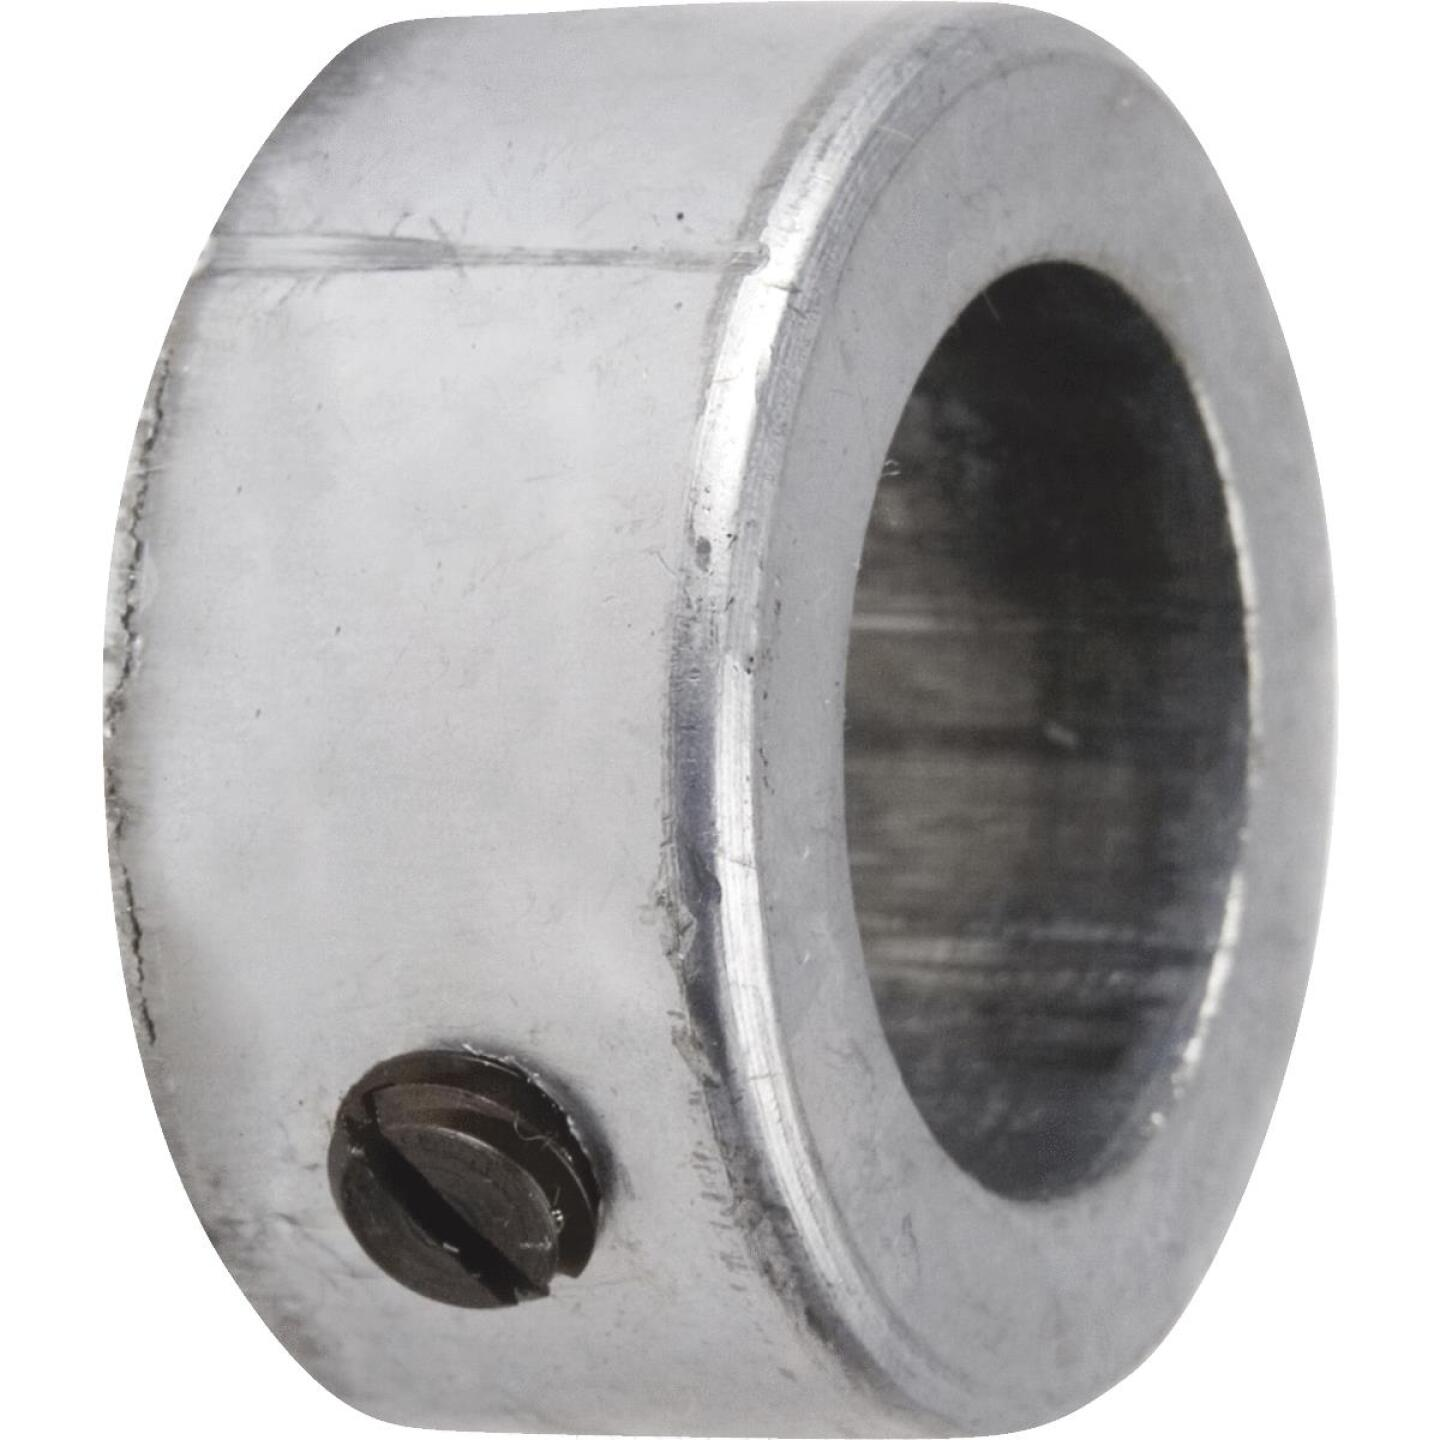 Chicago Die Casting 1/2 In. Shaft Collar Image 1